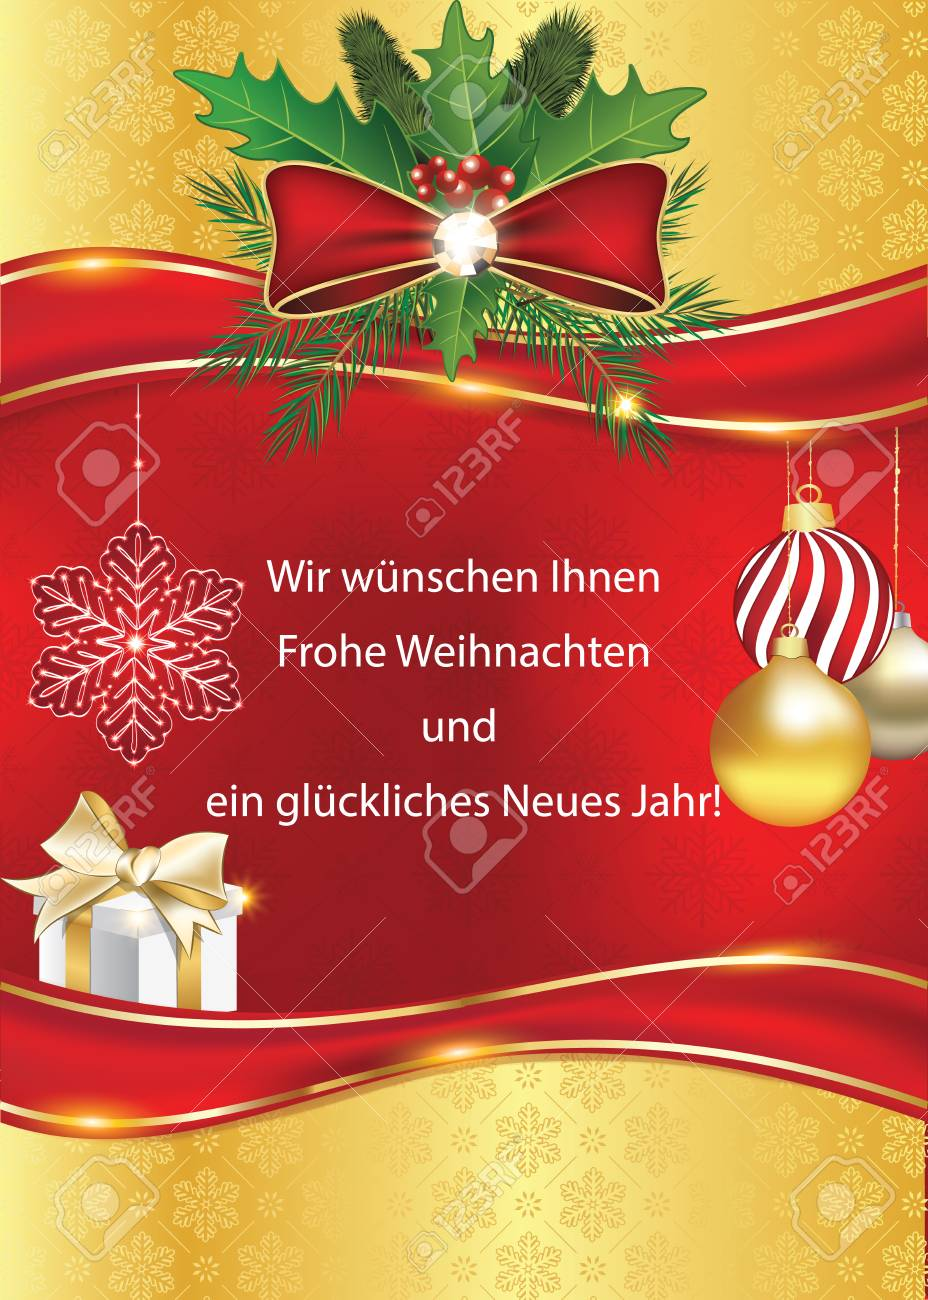 Greeting Card For The Year With Text In German Language We Wish